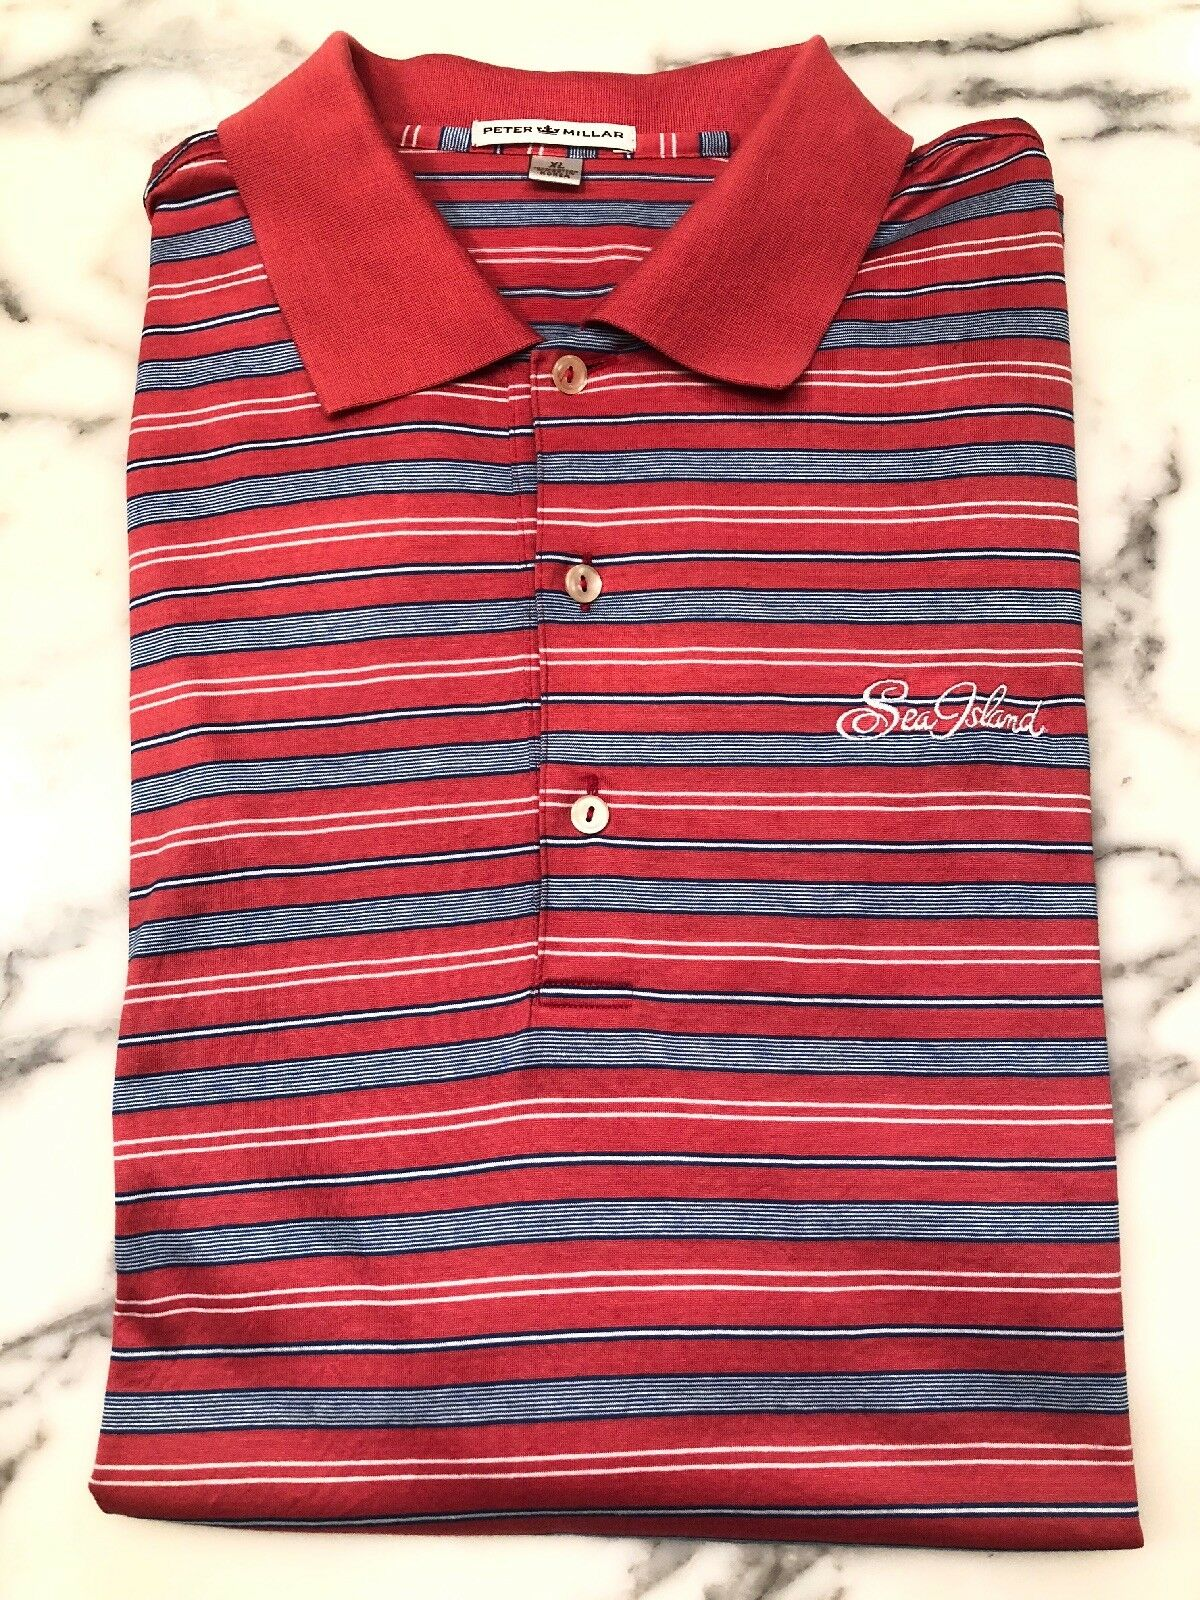 02f31d6884f2b6 Men's Peter Millar Sea Island XL Short Sleve Polo Red White And bluee Stripe